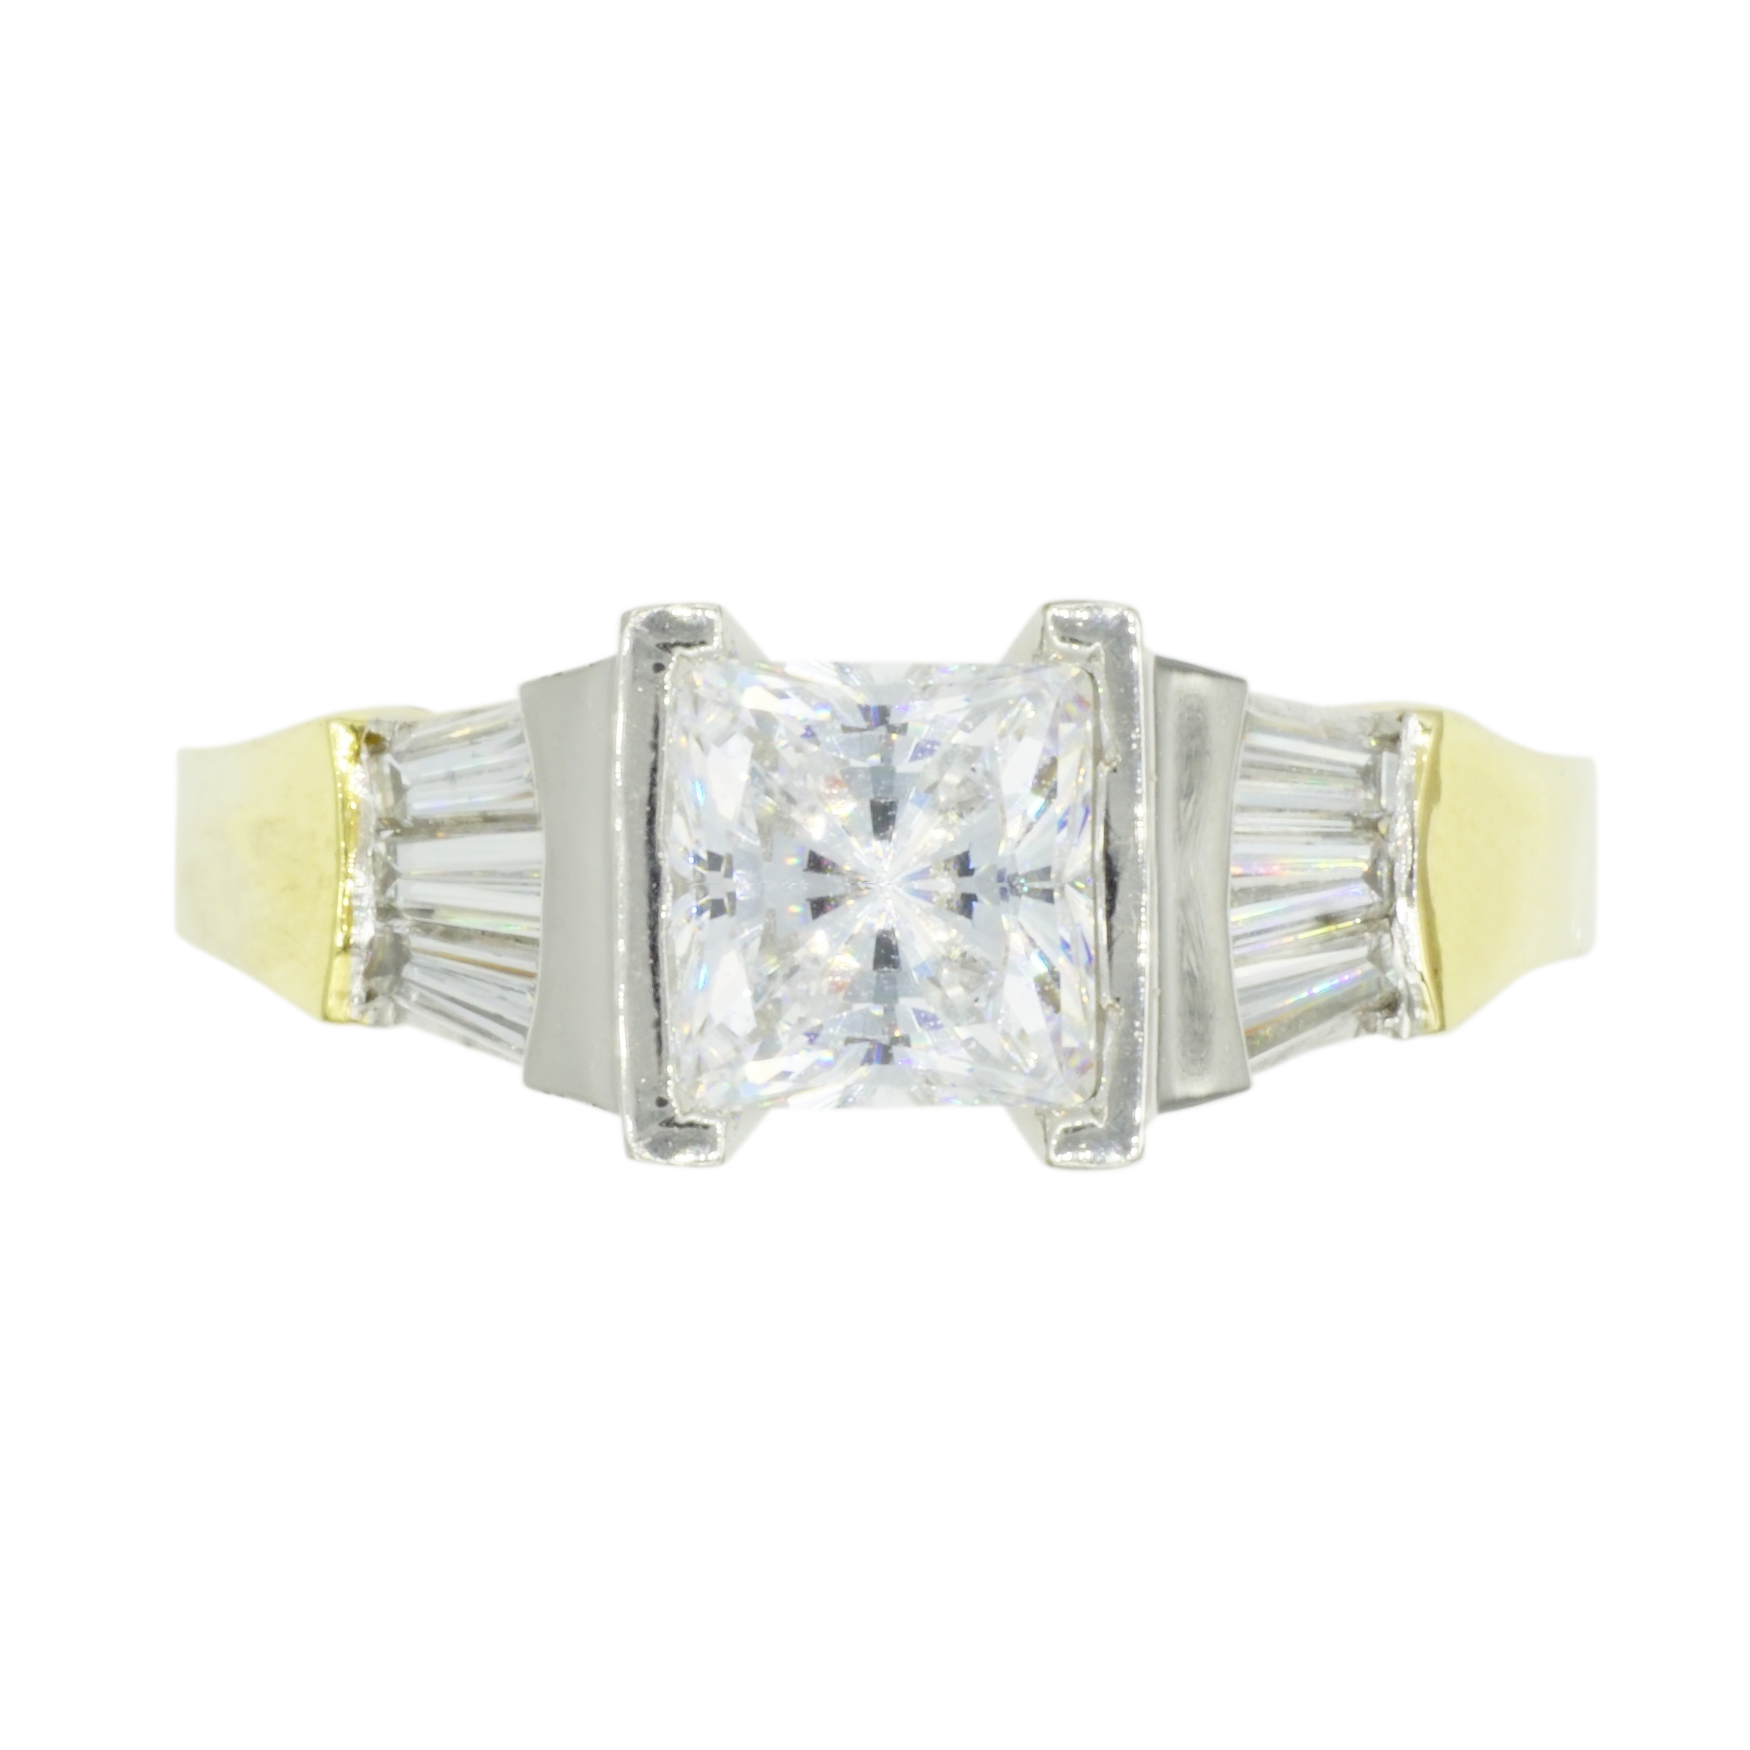 Princess Cut & Baguette Diamond Platinum & 18k Yellow Gold Engagement Ring - Top View